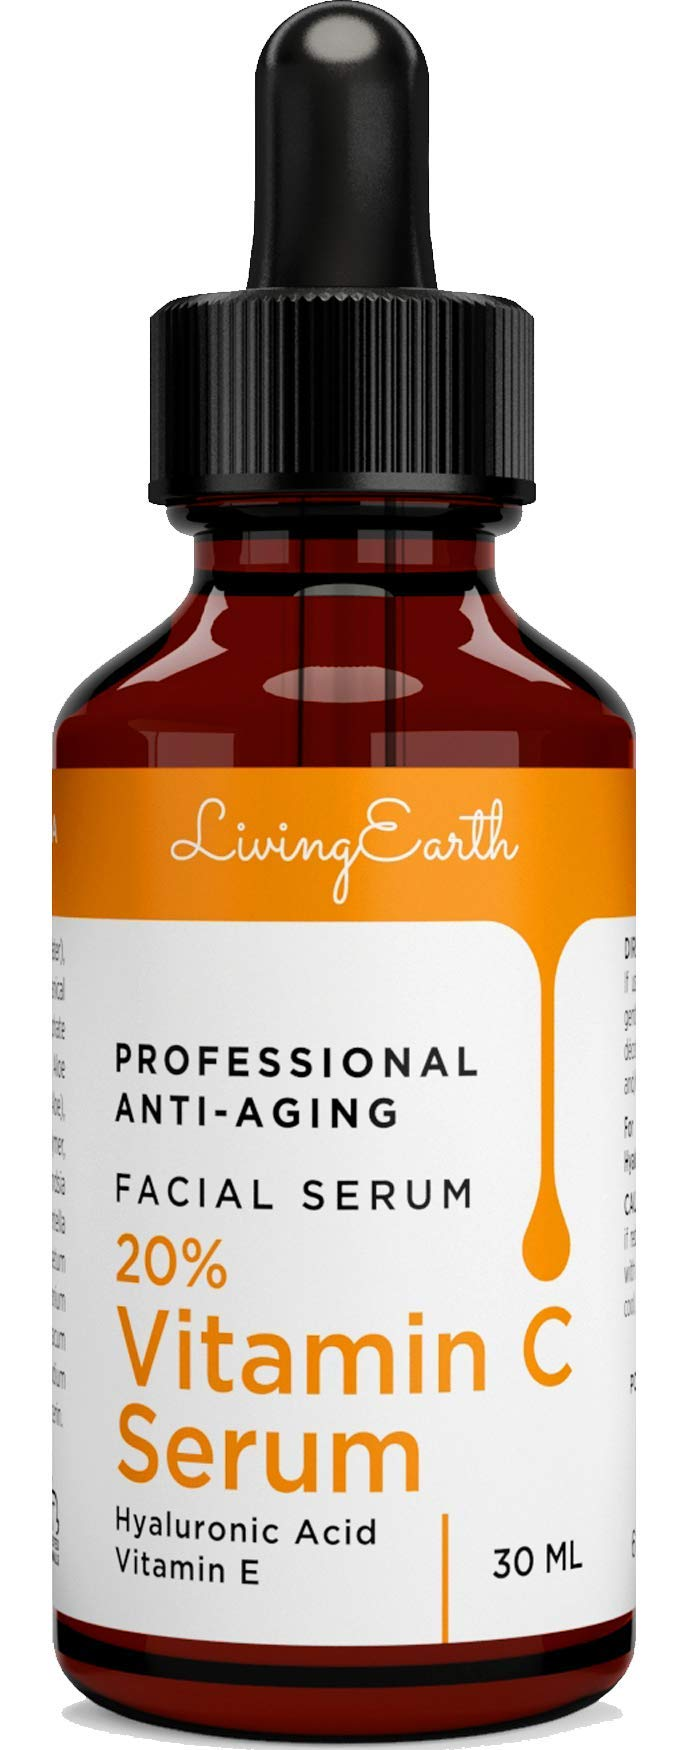 Vitamin C Serum with Hyaluronic Acid for Face, Eyes and Neck - Organic Skin Care and All Natural Ingredients - Best Professional Anti Aging, Anti Wrinkle, Fade Age Spots and Heal Sun Damage, 1 oz - M